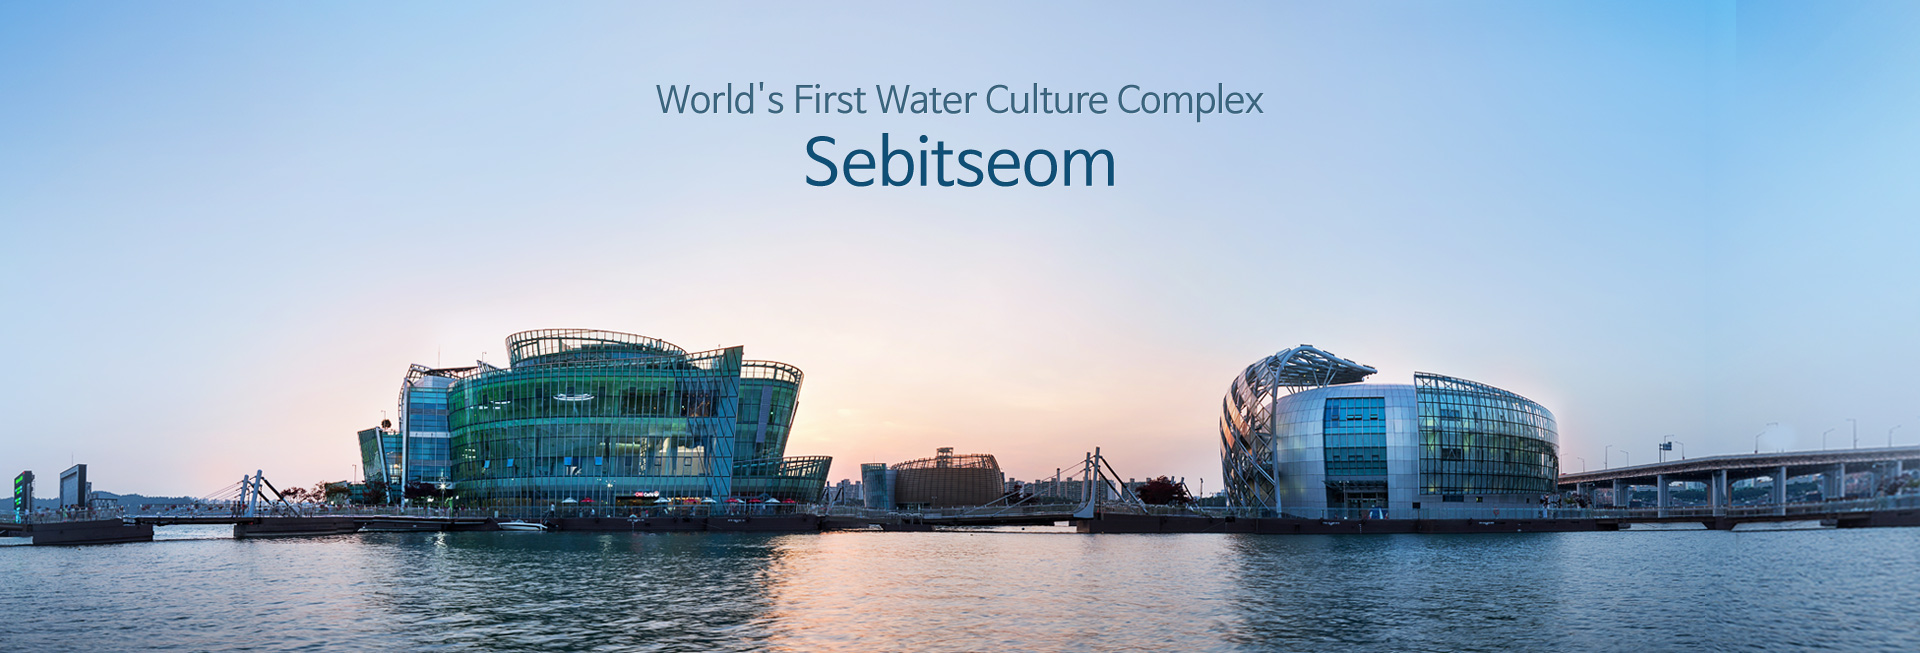 World's First Water Culture Complex some sevit